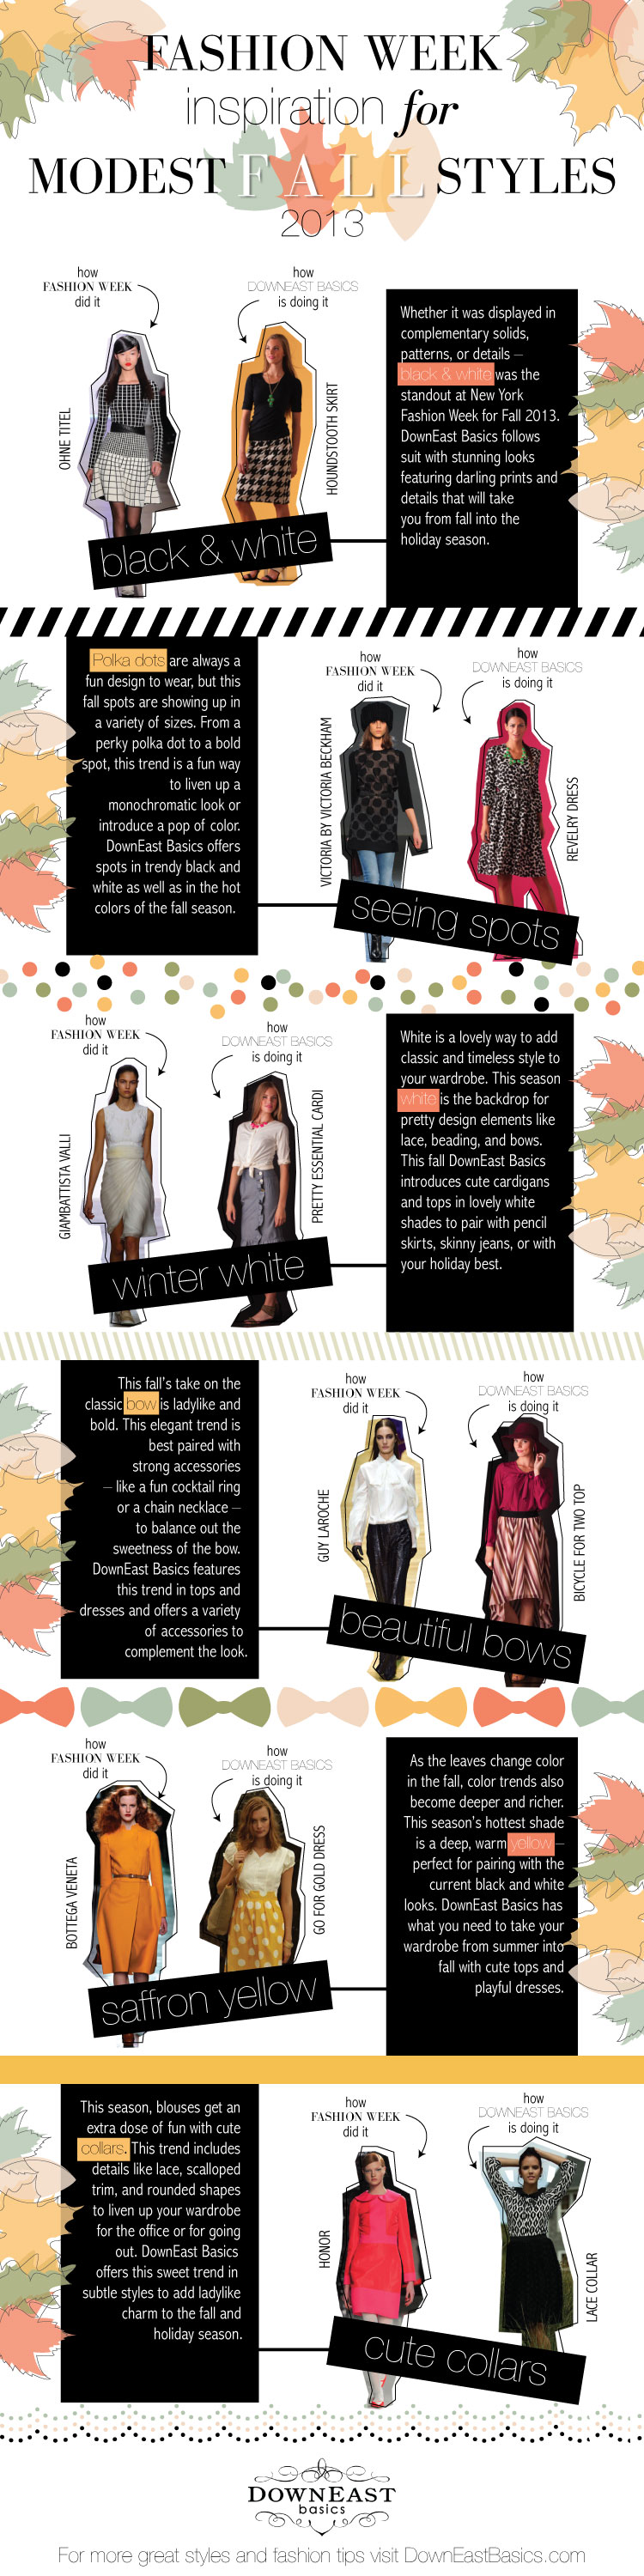 Fashion Week Inspiration For Modest Fall Styles